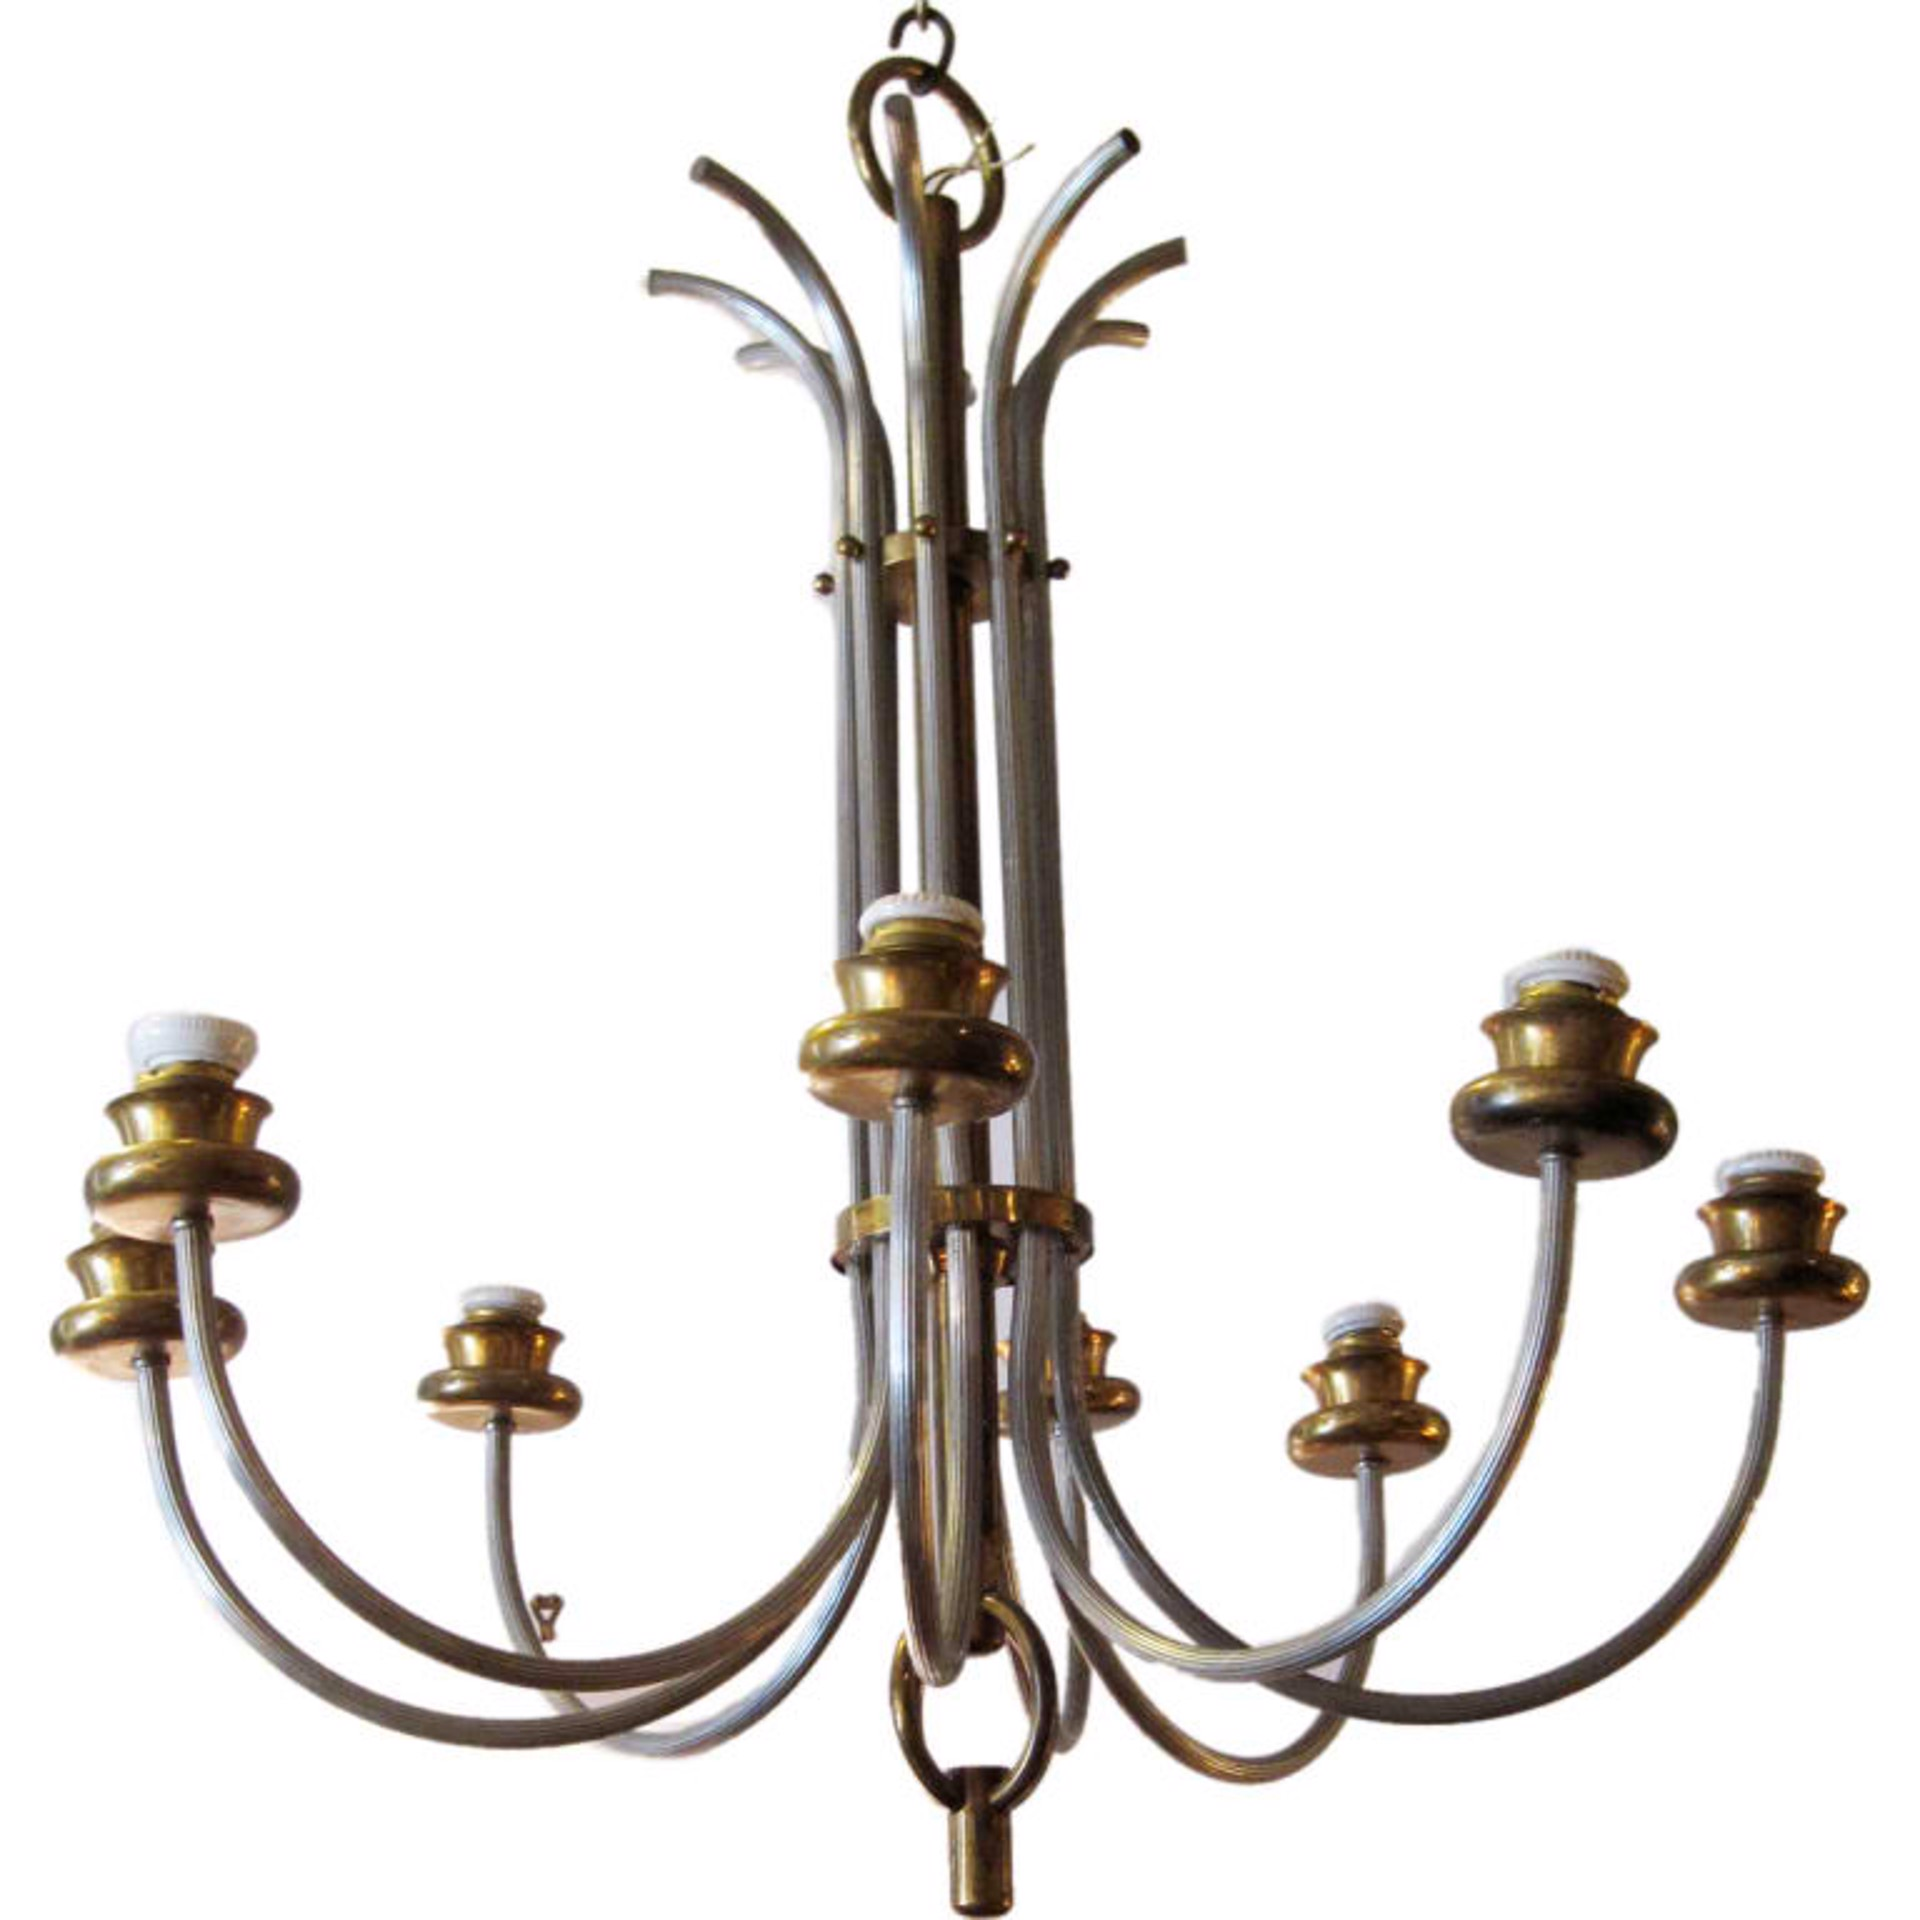 8-Arm French 1940 chandelier by Vintage